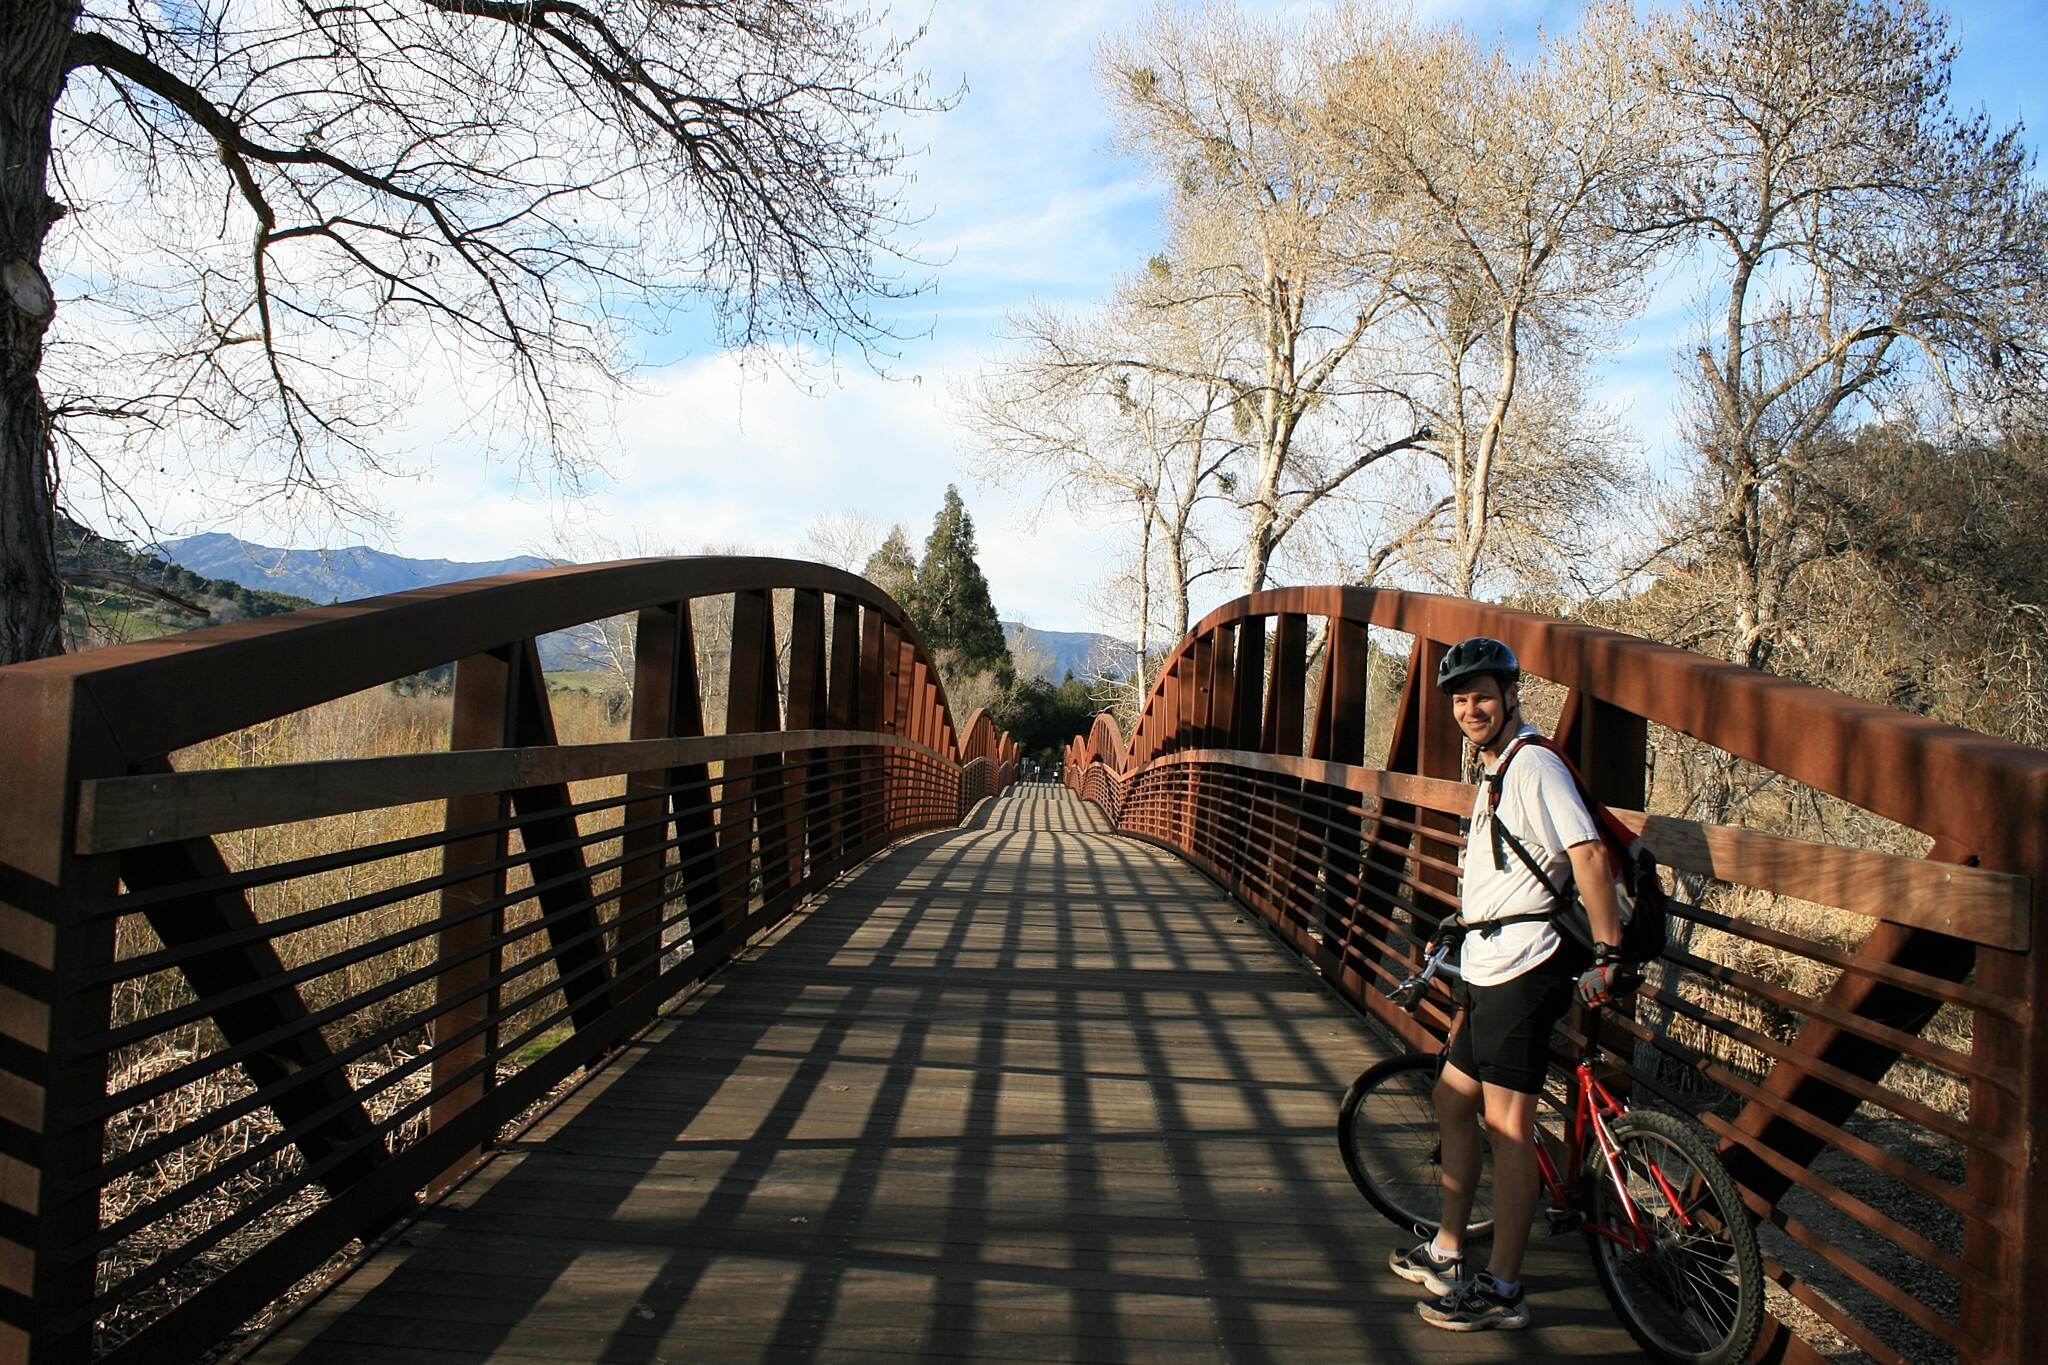 Ojai Valley Trail Bridge on the Ojai Valley Trail